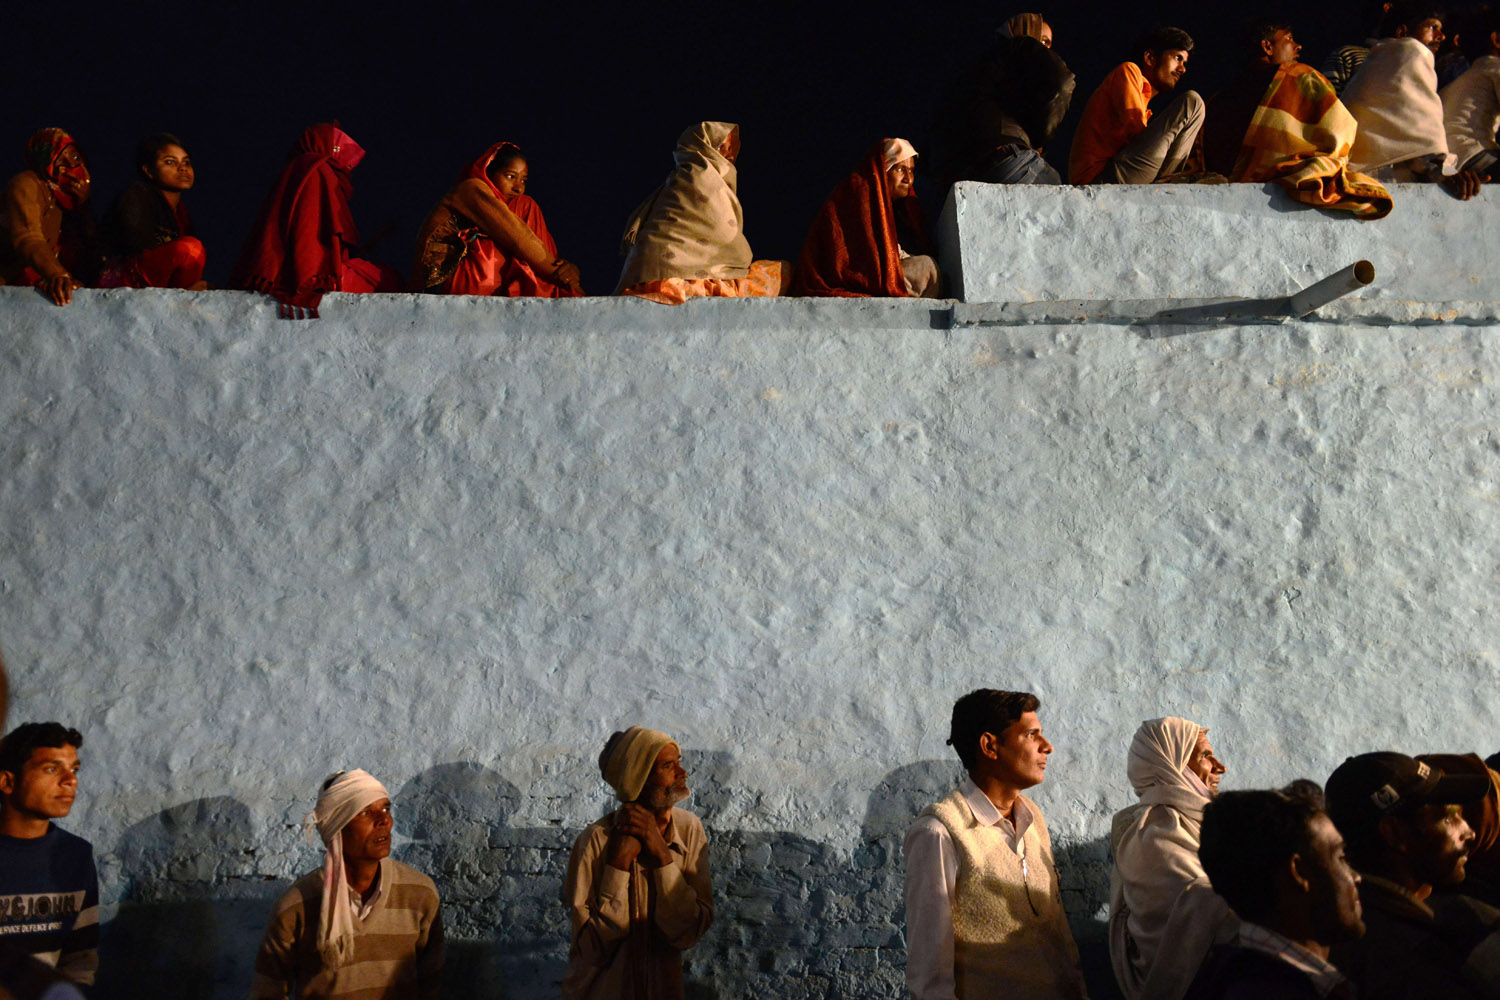 Mar. 17, 2014. Indian revelers gather on a rooftop to watch a performance of a local folk drama during a ritual to mark the first day of the Holi spring festival, also known as the Festival of Colors.